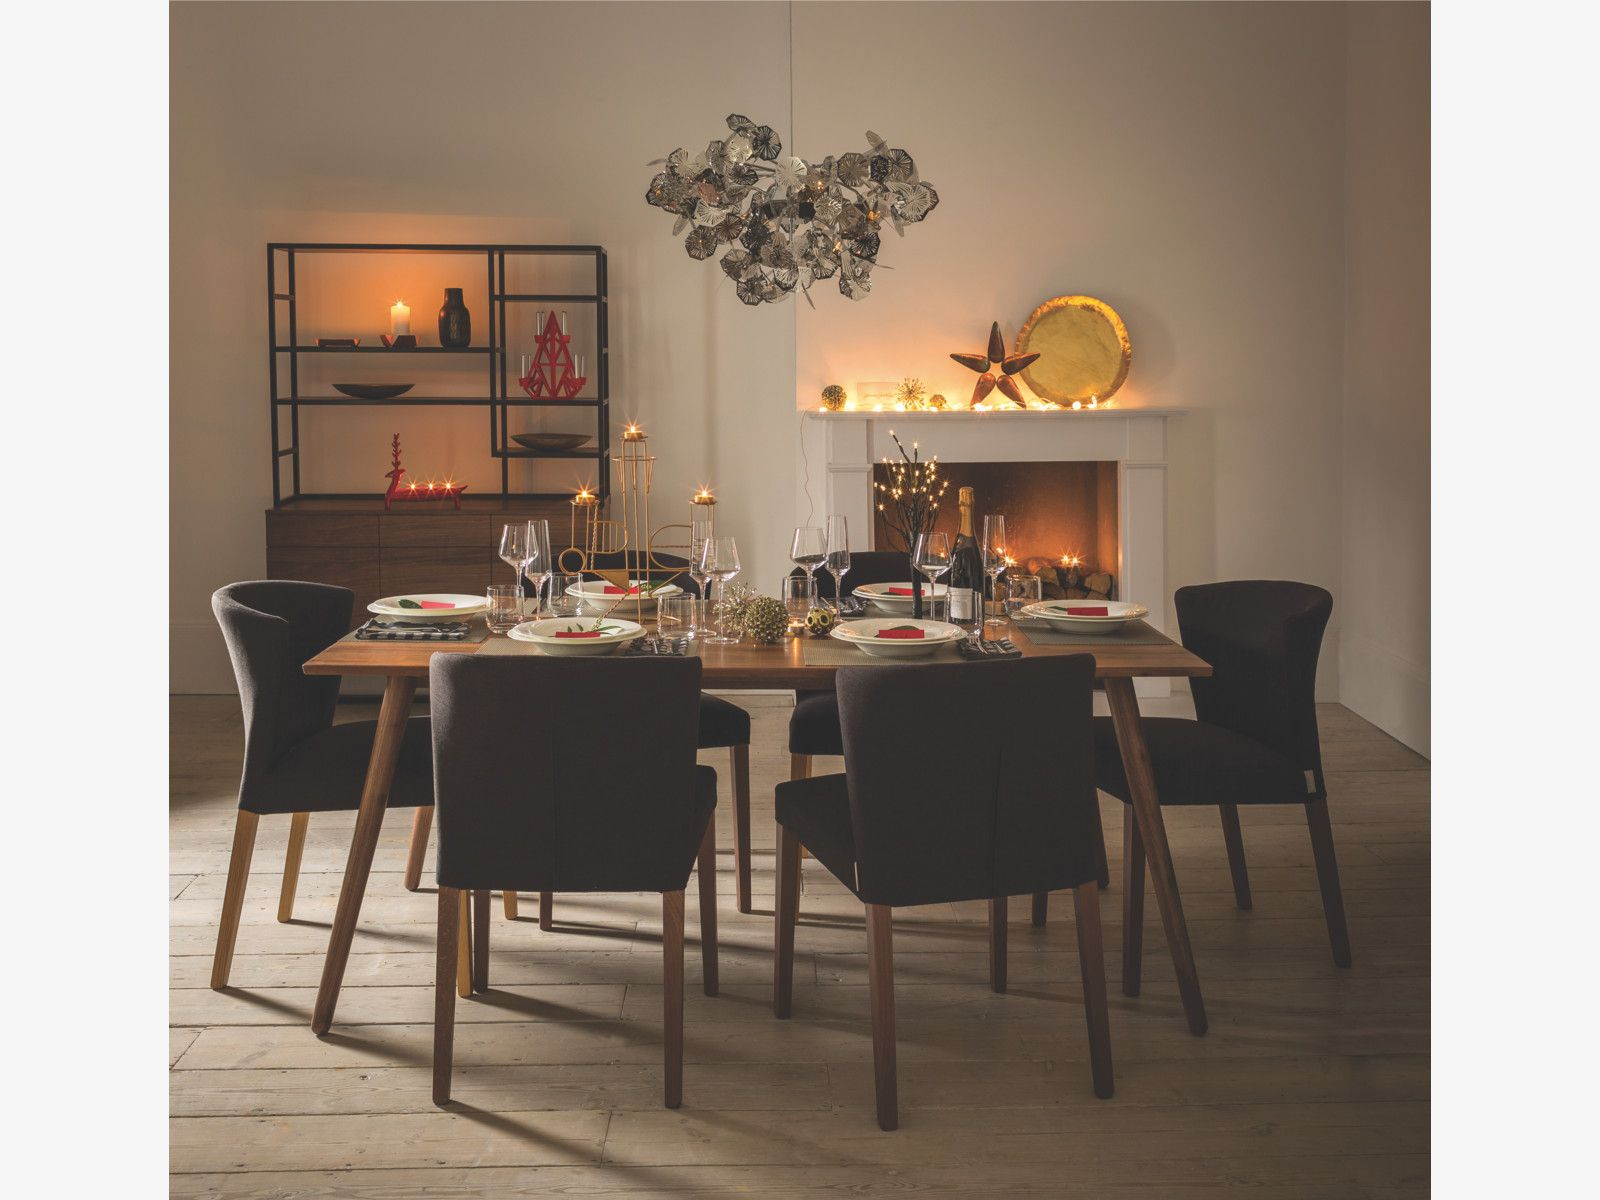 Habitat Grey Upholstered Dining ChairsMetal ChandelierPendant LightingWalnut TableDining